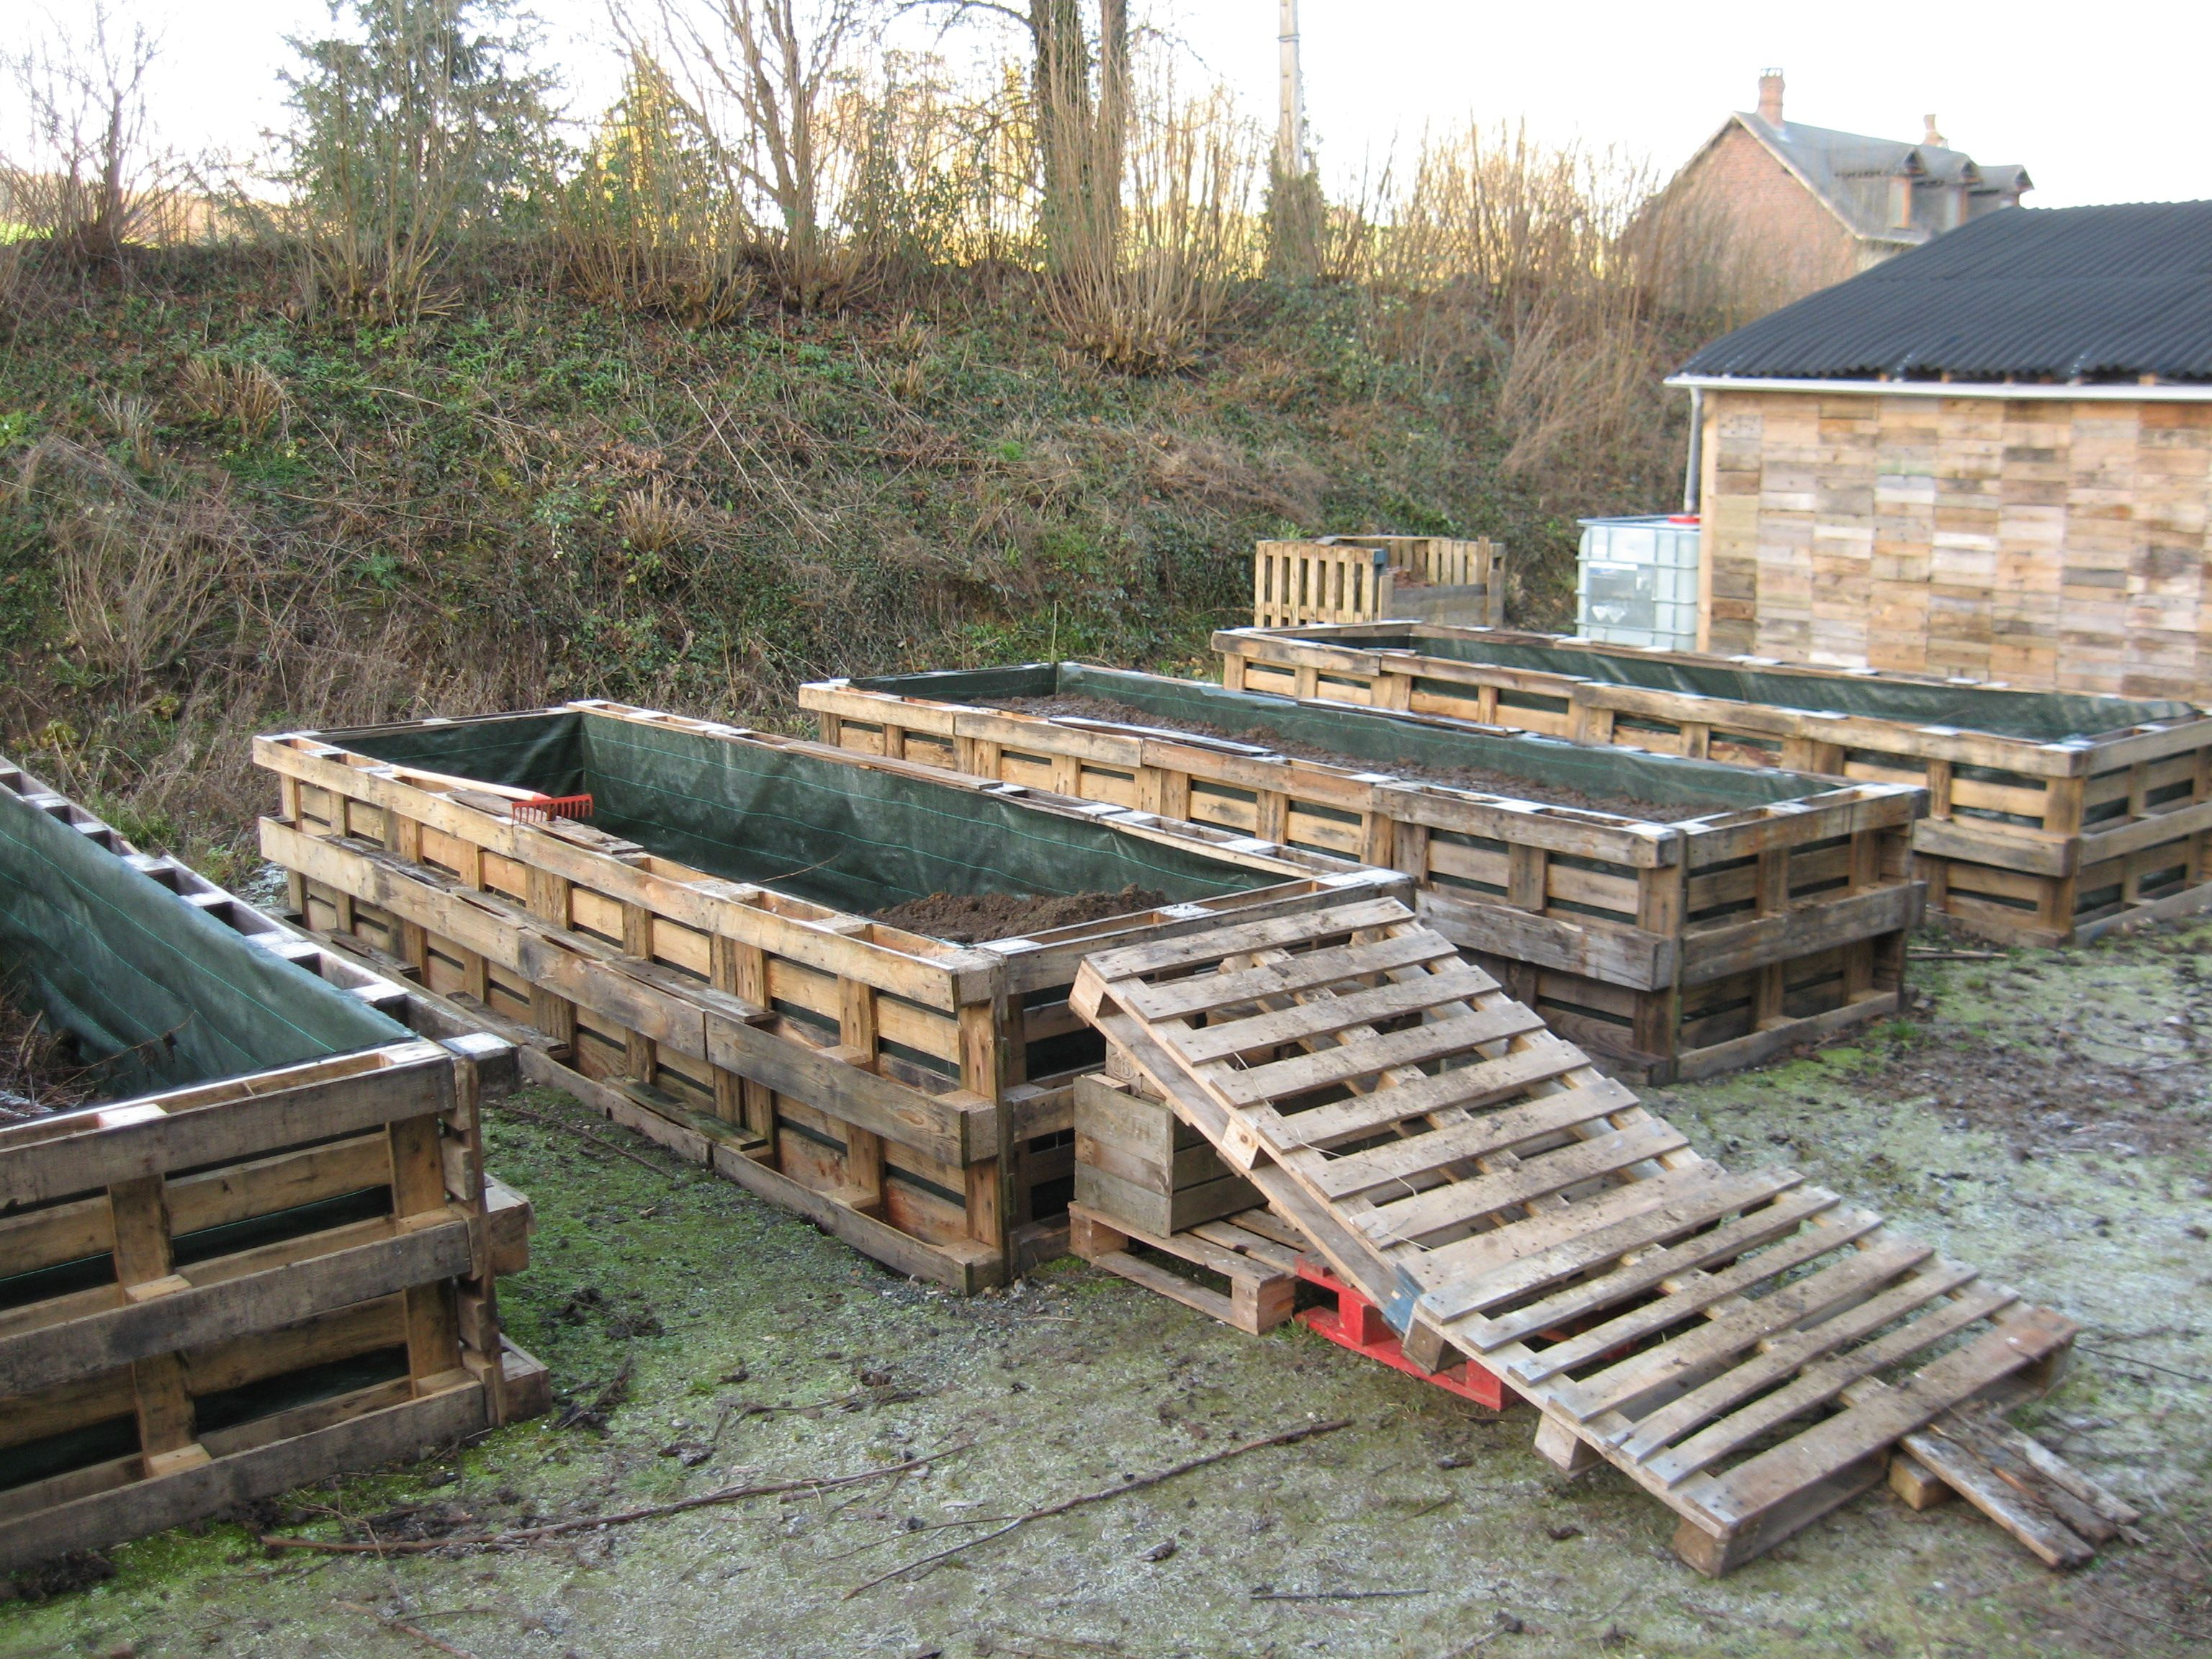 Making above ground garden beds - Old Pallets Used To Make A Raised Garden Cool Now I Don T Have